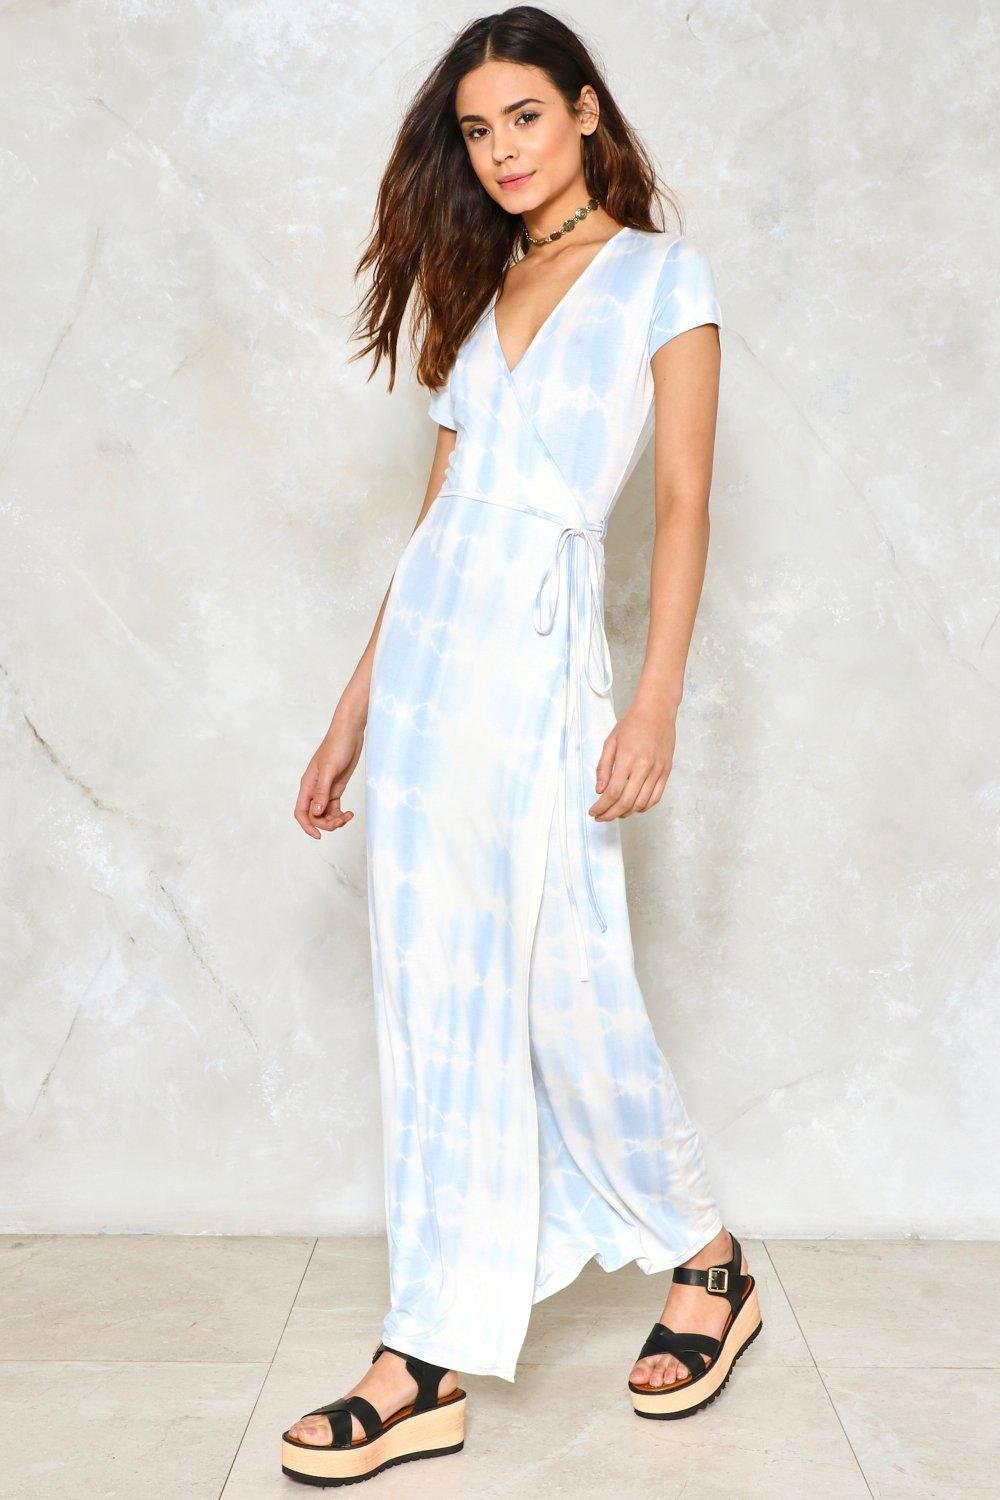 635c67fec9 Womens Sky Tie-Dye For Maxi Dress